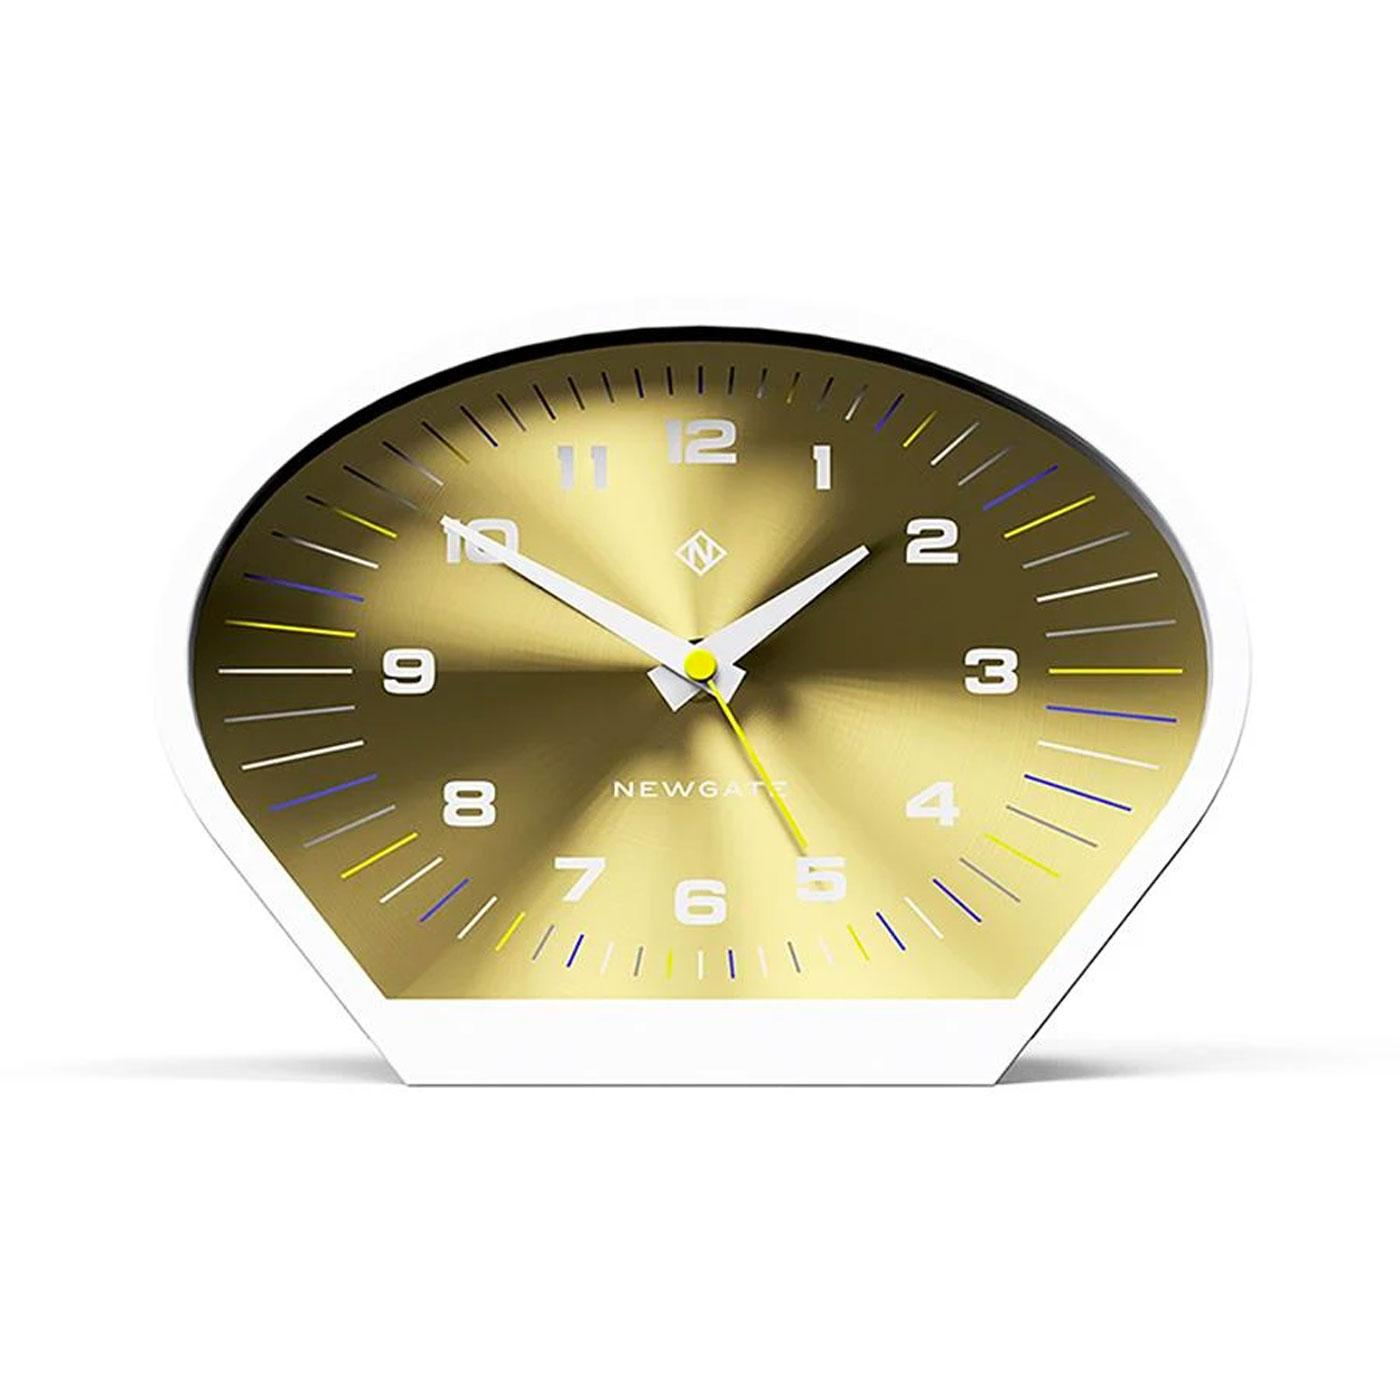 Space Cowboy NEWGATE CLOCKS Retro Mantel Clock